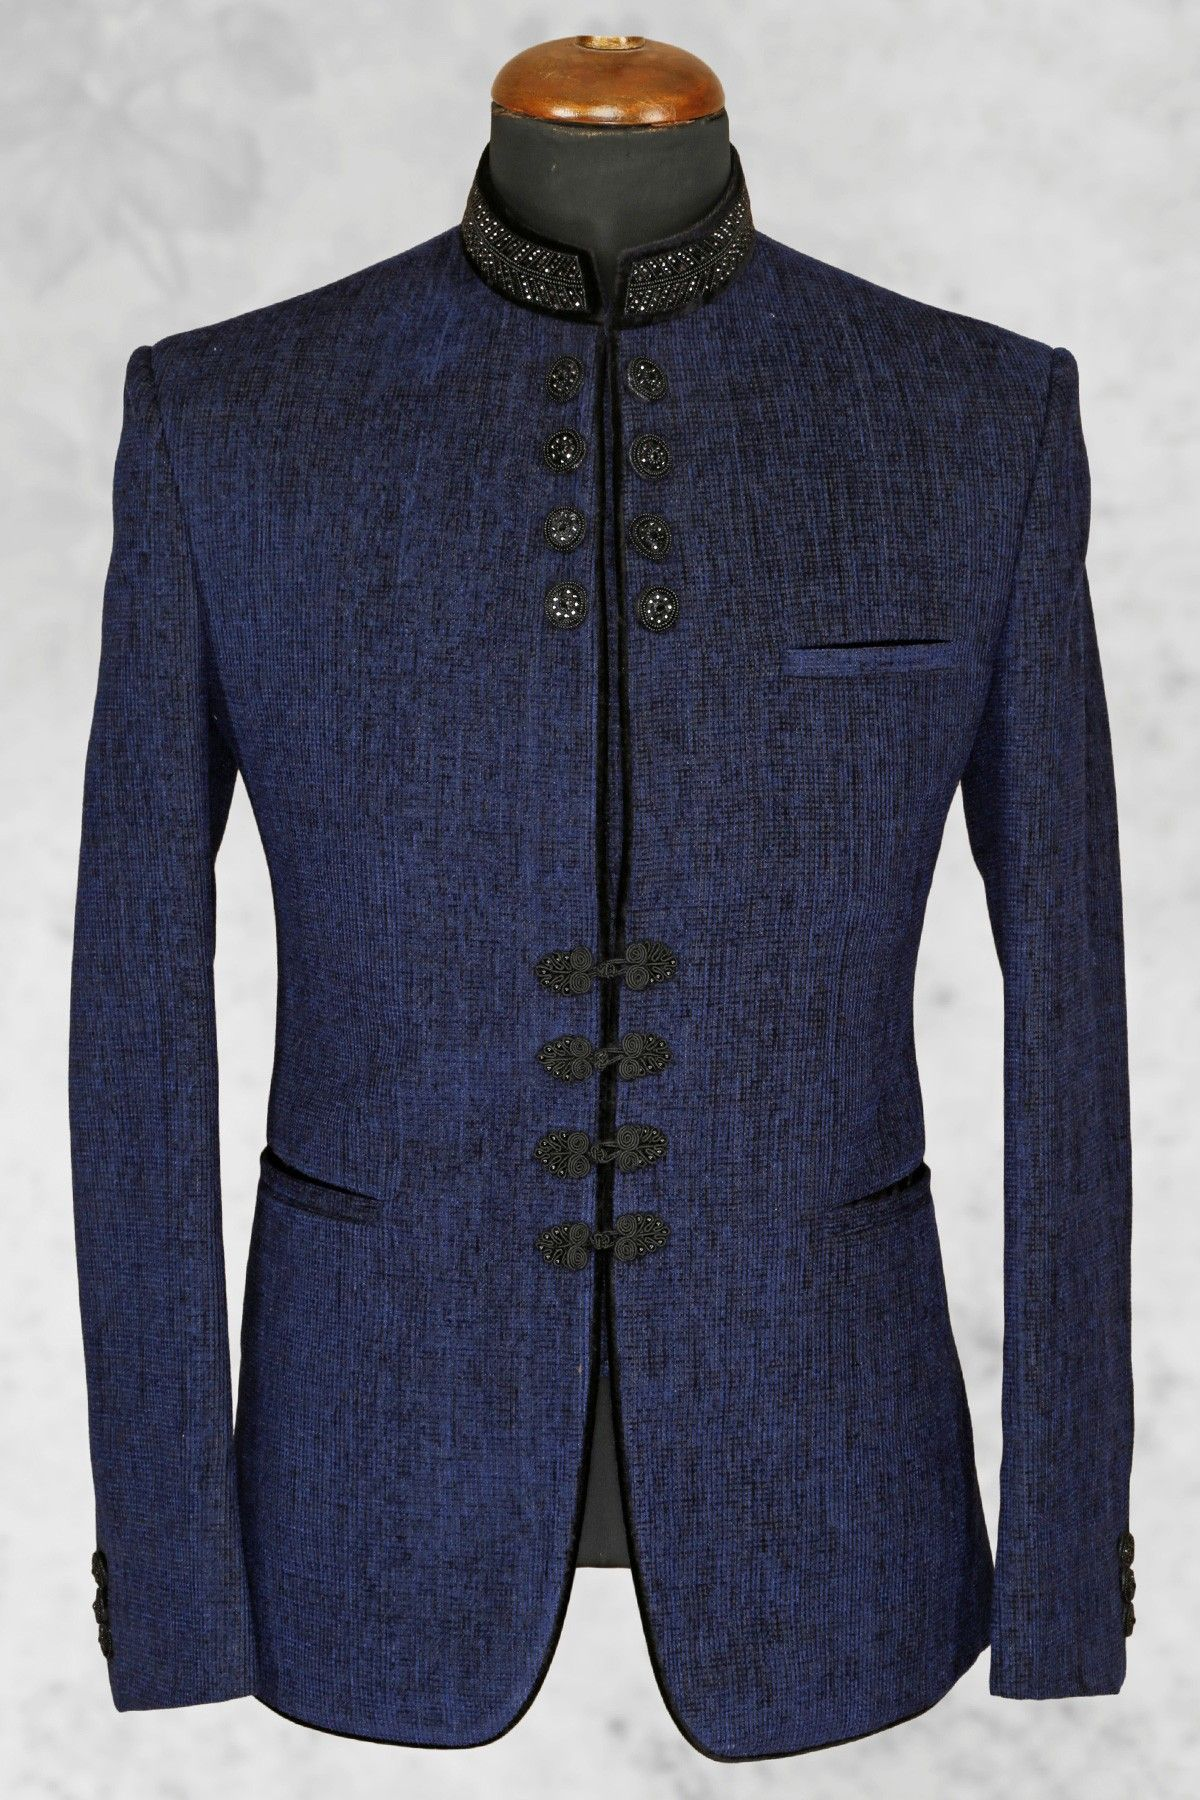 a19782dc485 Navy  blue fashionable  jute suit with bandhgala collar-ST504 ...